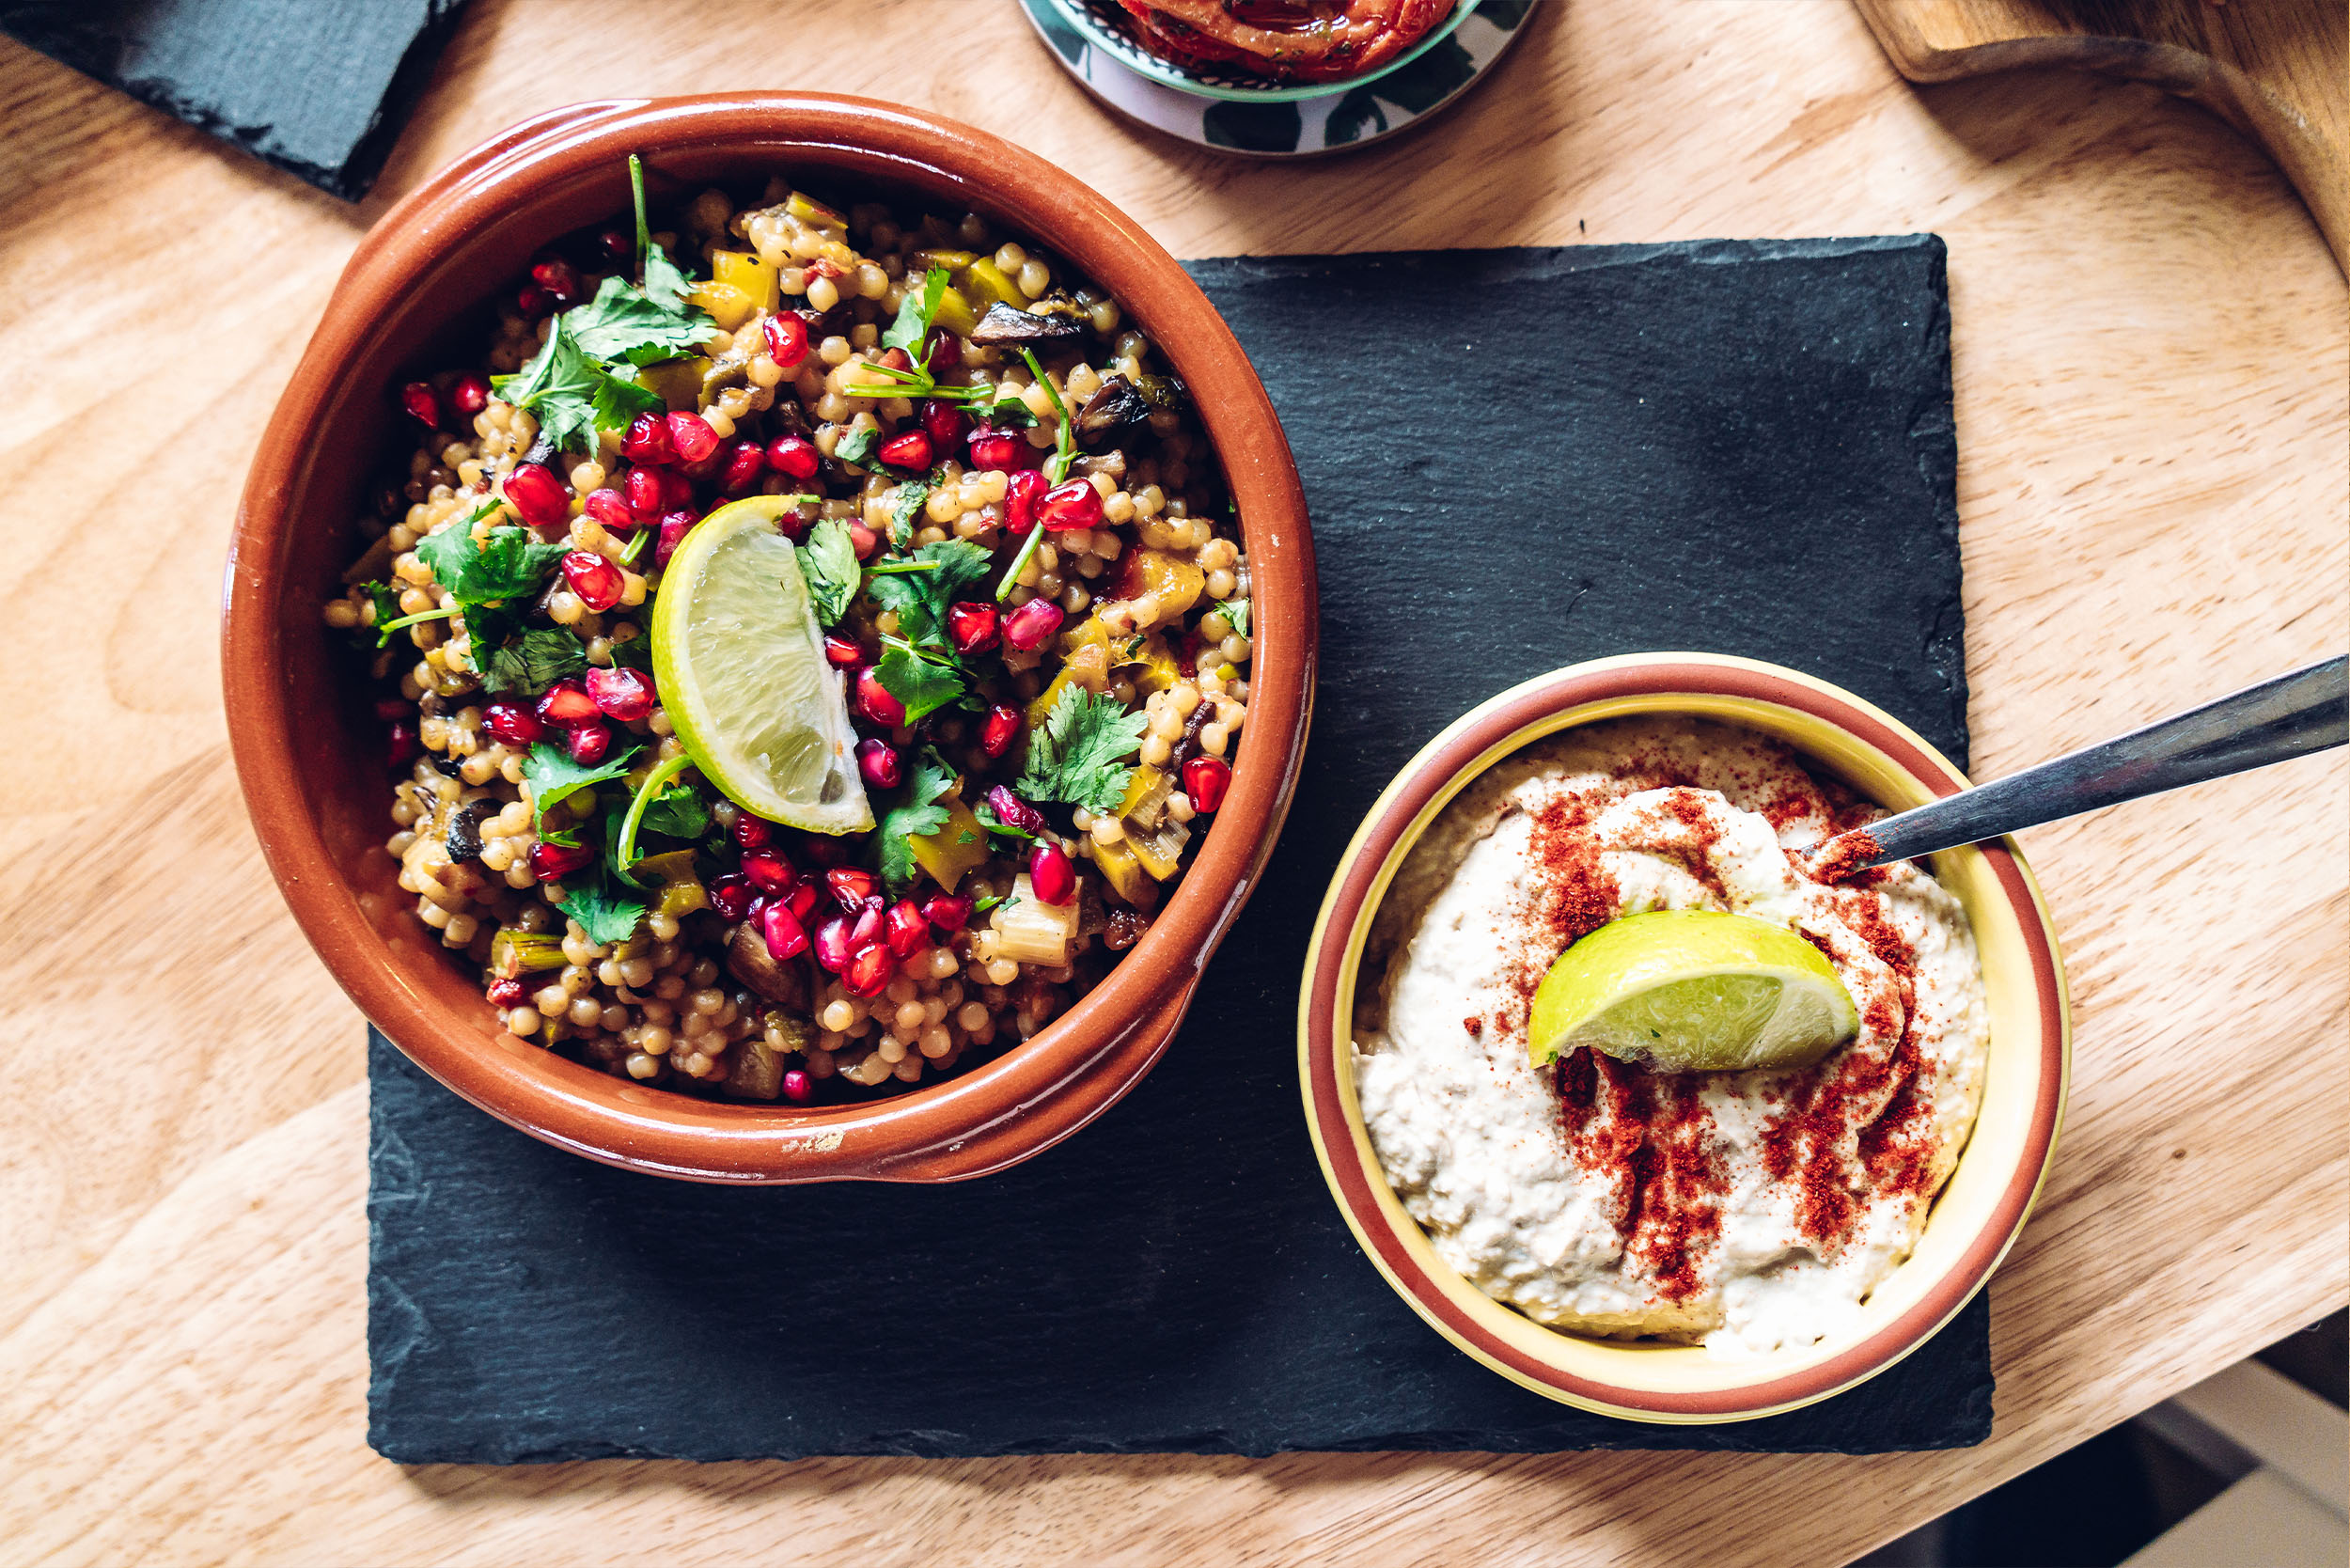 Gemma and Life Blog - Mediterranean Food - Giant Couscous and Hummus.jpg